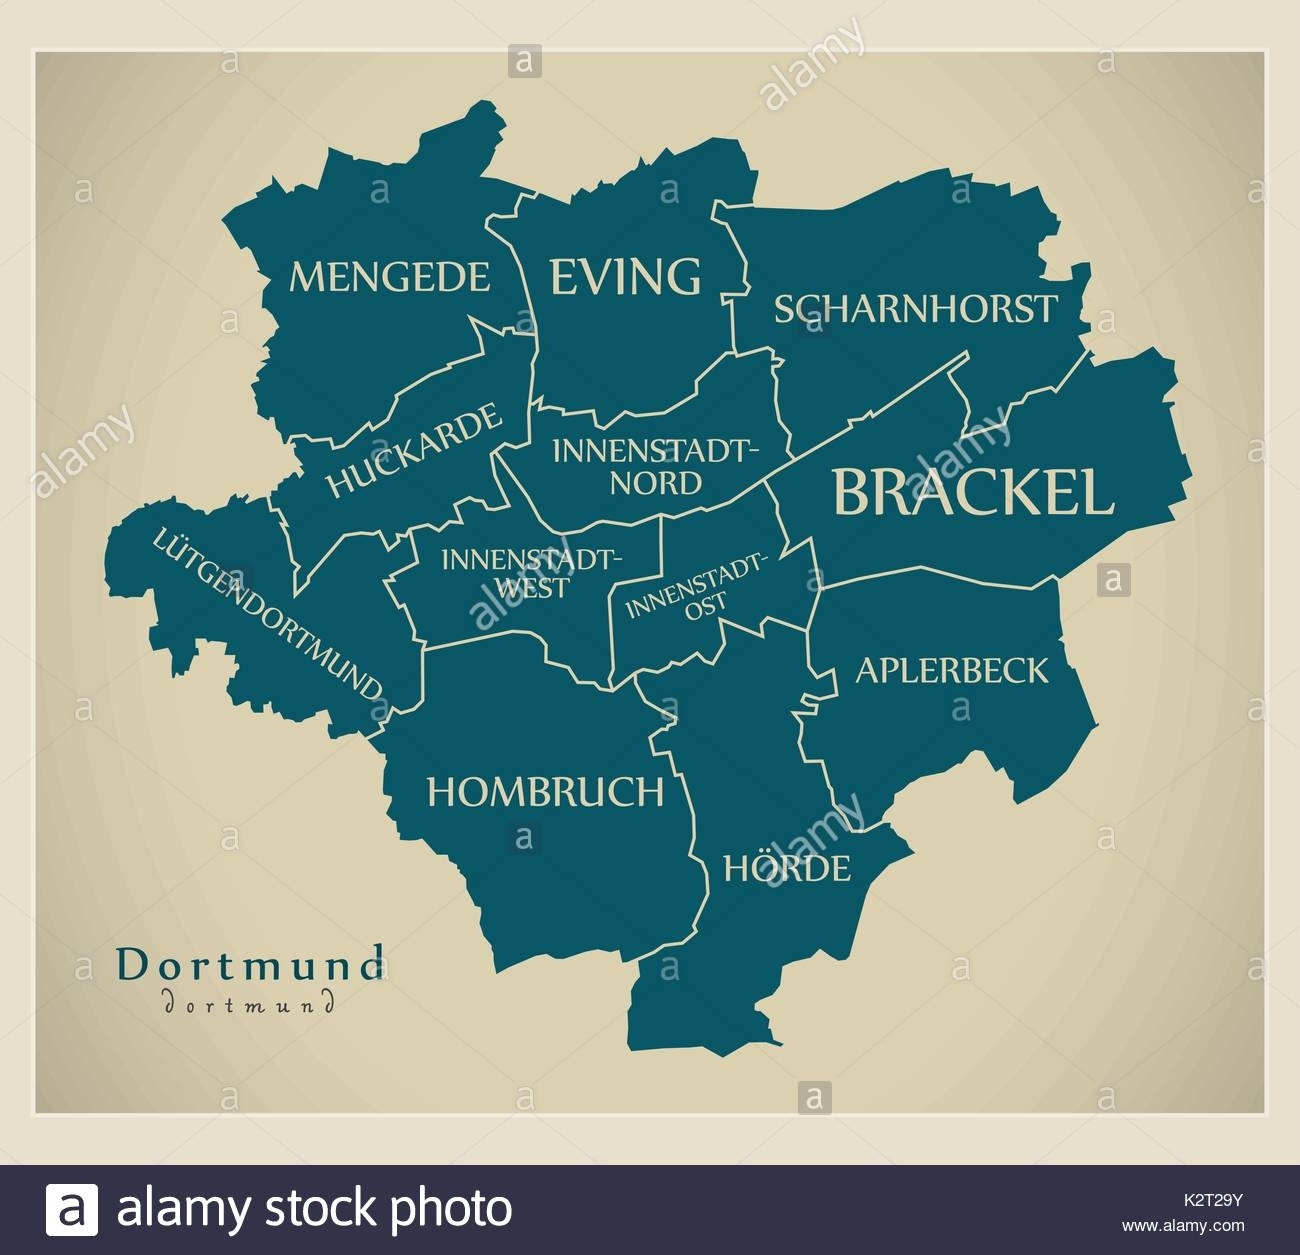 Modern City Map - Dortmund City Of Germany With Boroughs And Titles with regard to Dortmund Germany Map